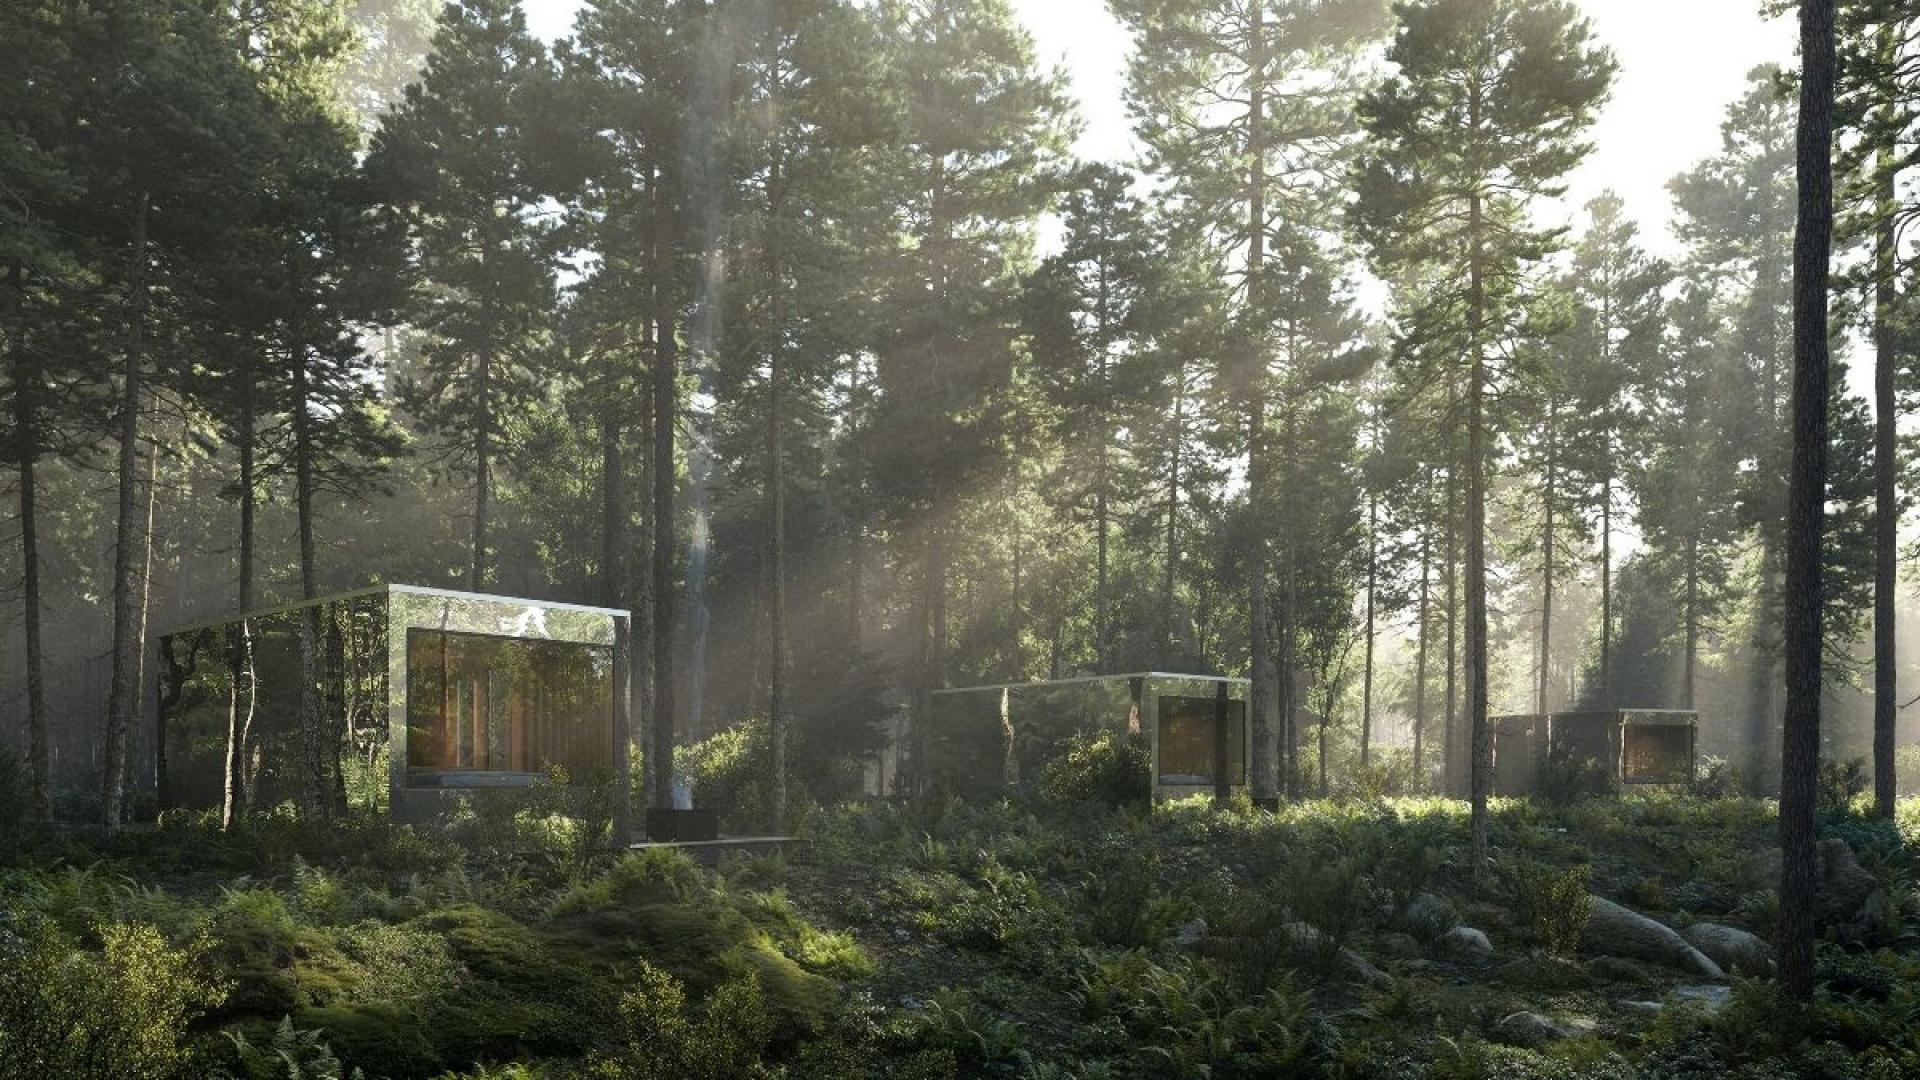 Arcana self-directed nature retreat opens in Ontario | A cluster of stainless steel cabins at Arcana